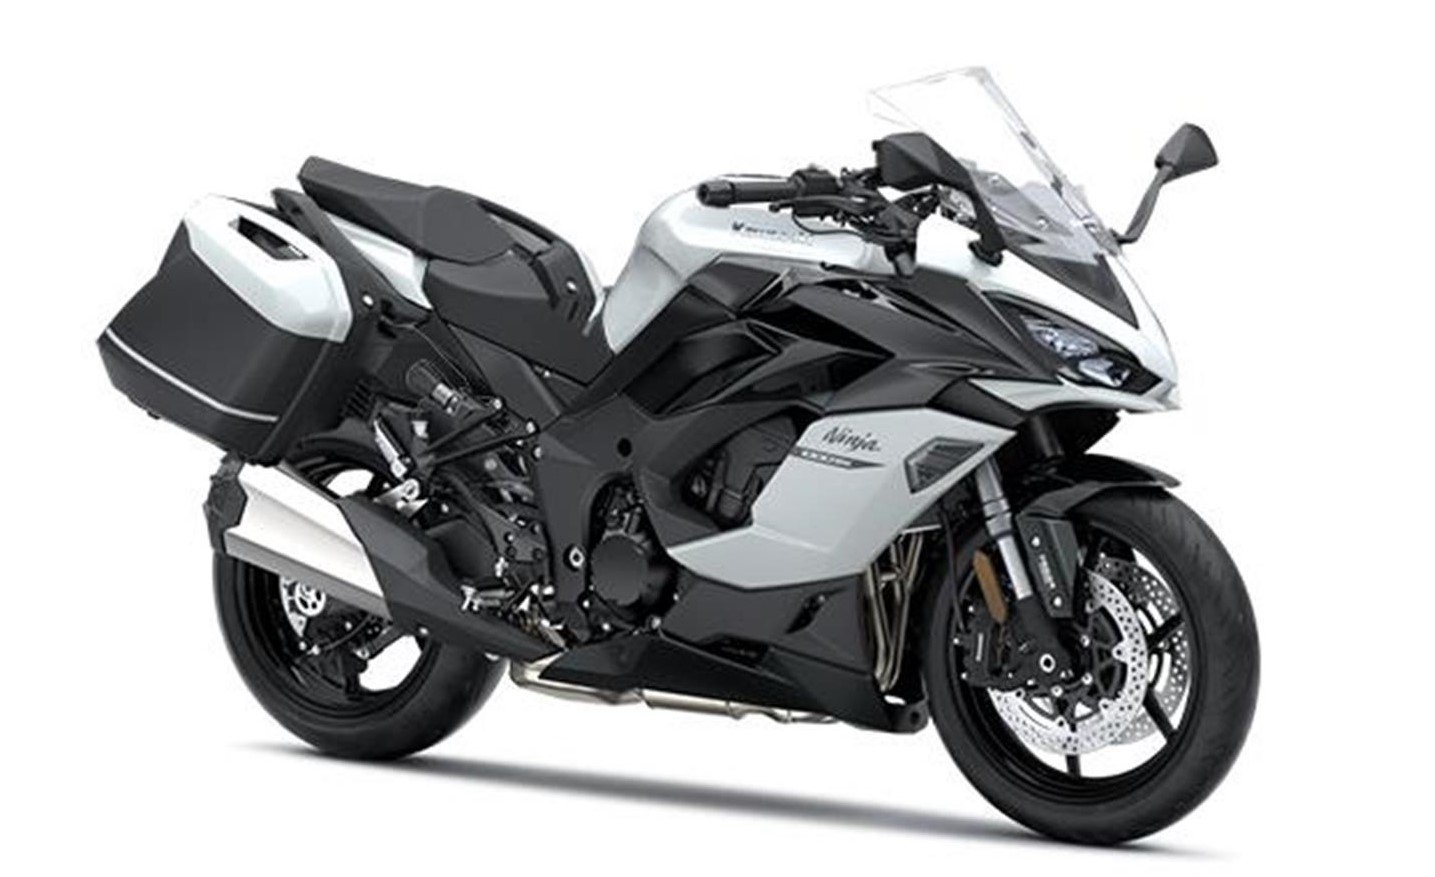 New 2020 Kawasaki Ninja 1000 SX TOURER**FREE DELIVERY** For Sale (picture 1 of 6)